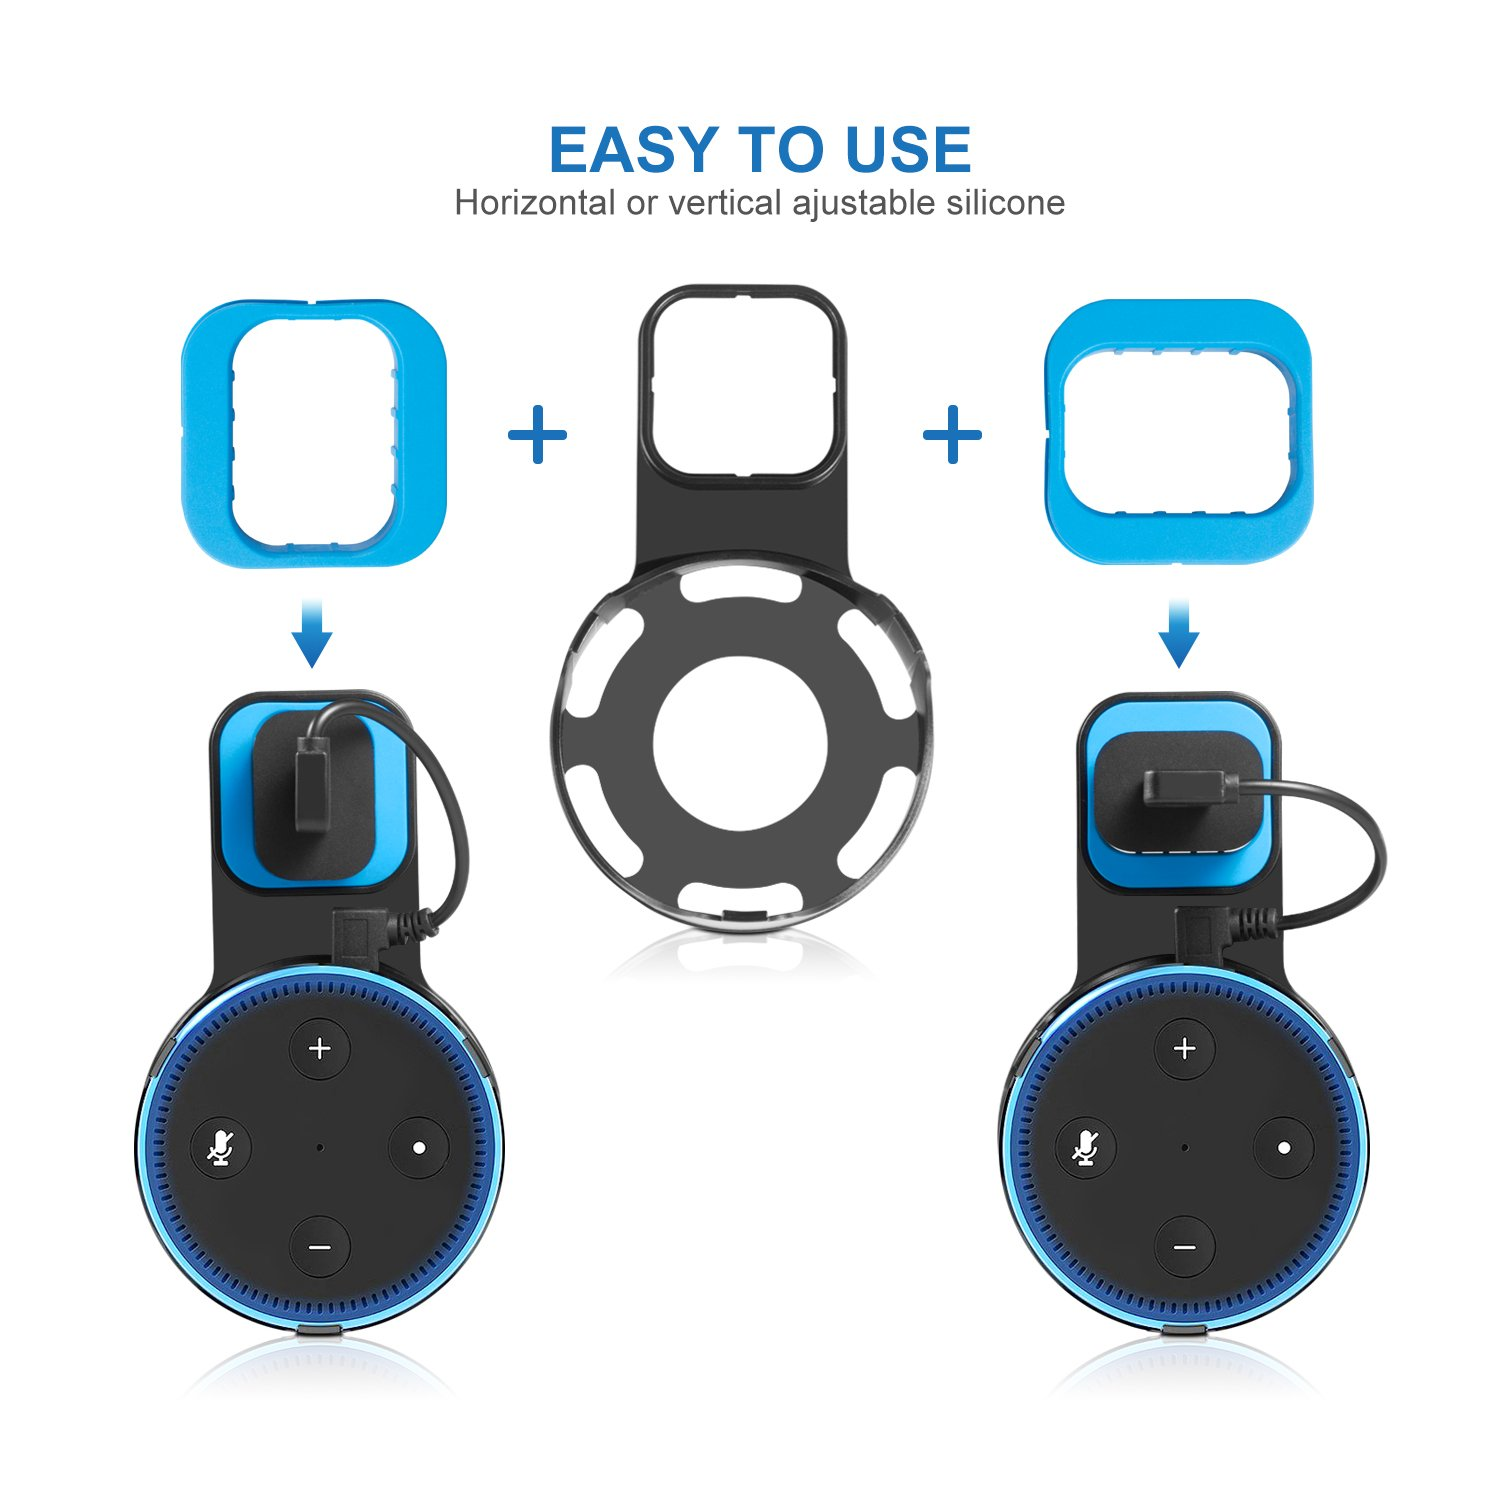 Kupton Wall Mount for Echo Dot 2, Outlet Wall Mount Hanger Holder Stand Clip & Protective Carrying Storage Case Accessories for Echo Dot 2nd Generation Without Messy Wires or Screws – Black by Kupton (Image #3)